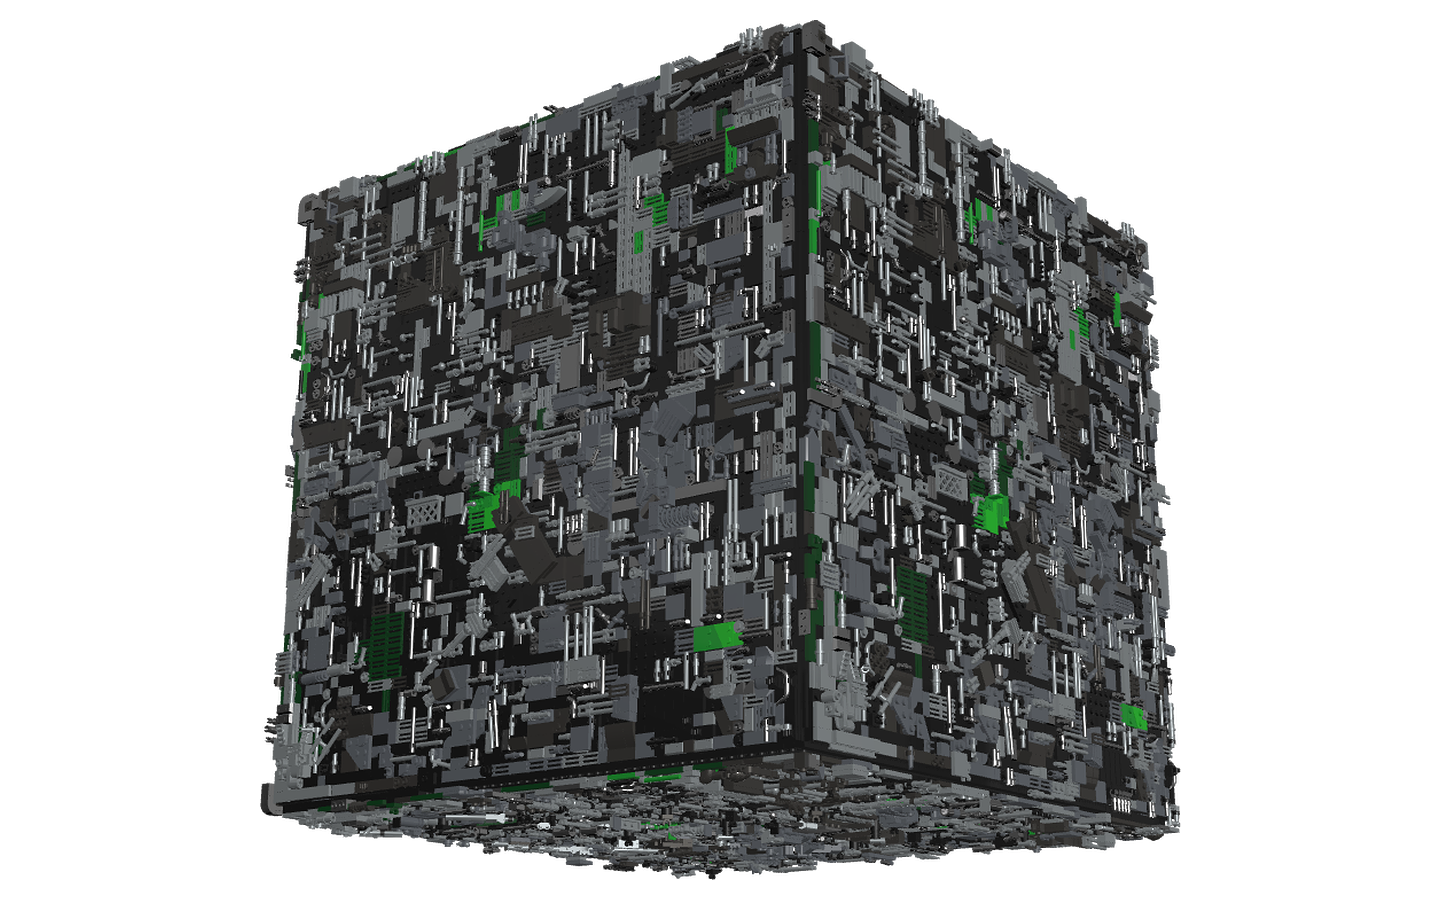 Borg cube png top down. Mecabricks com lego by